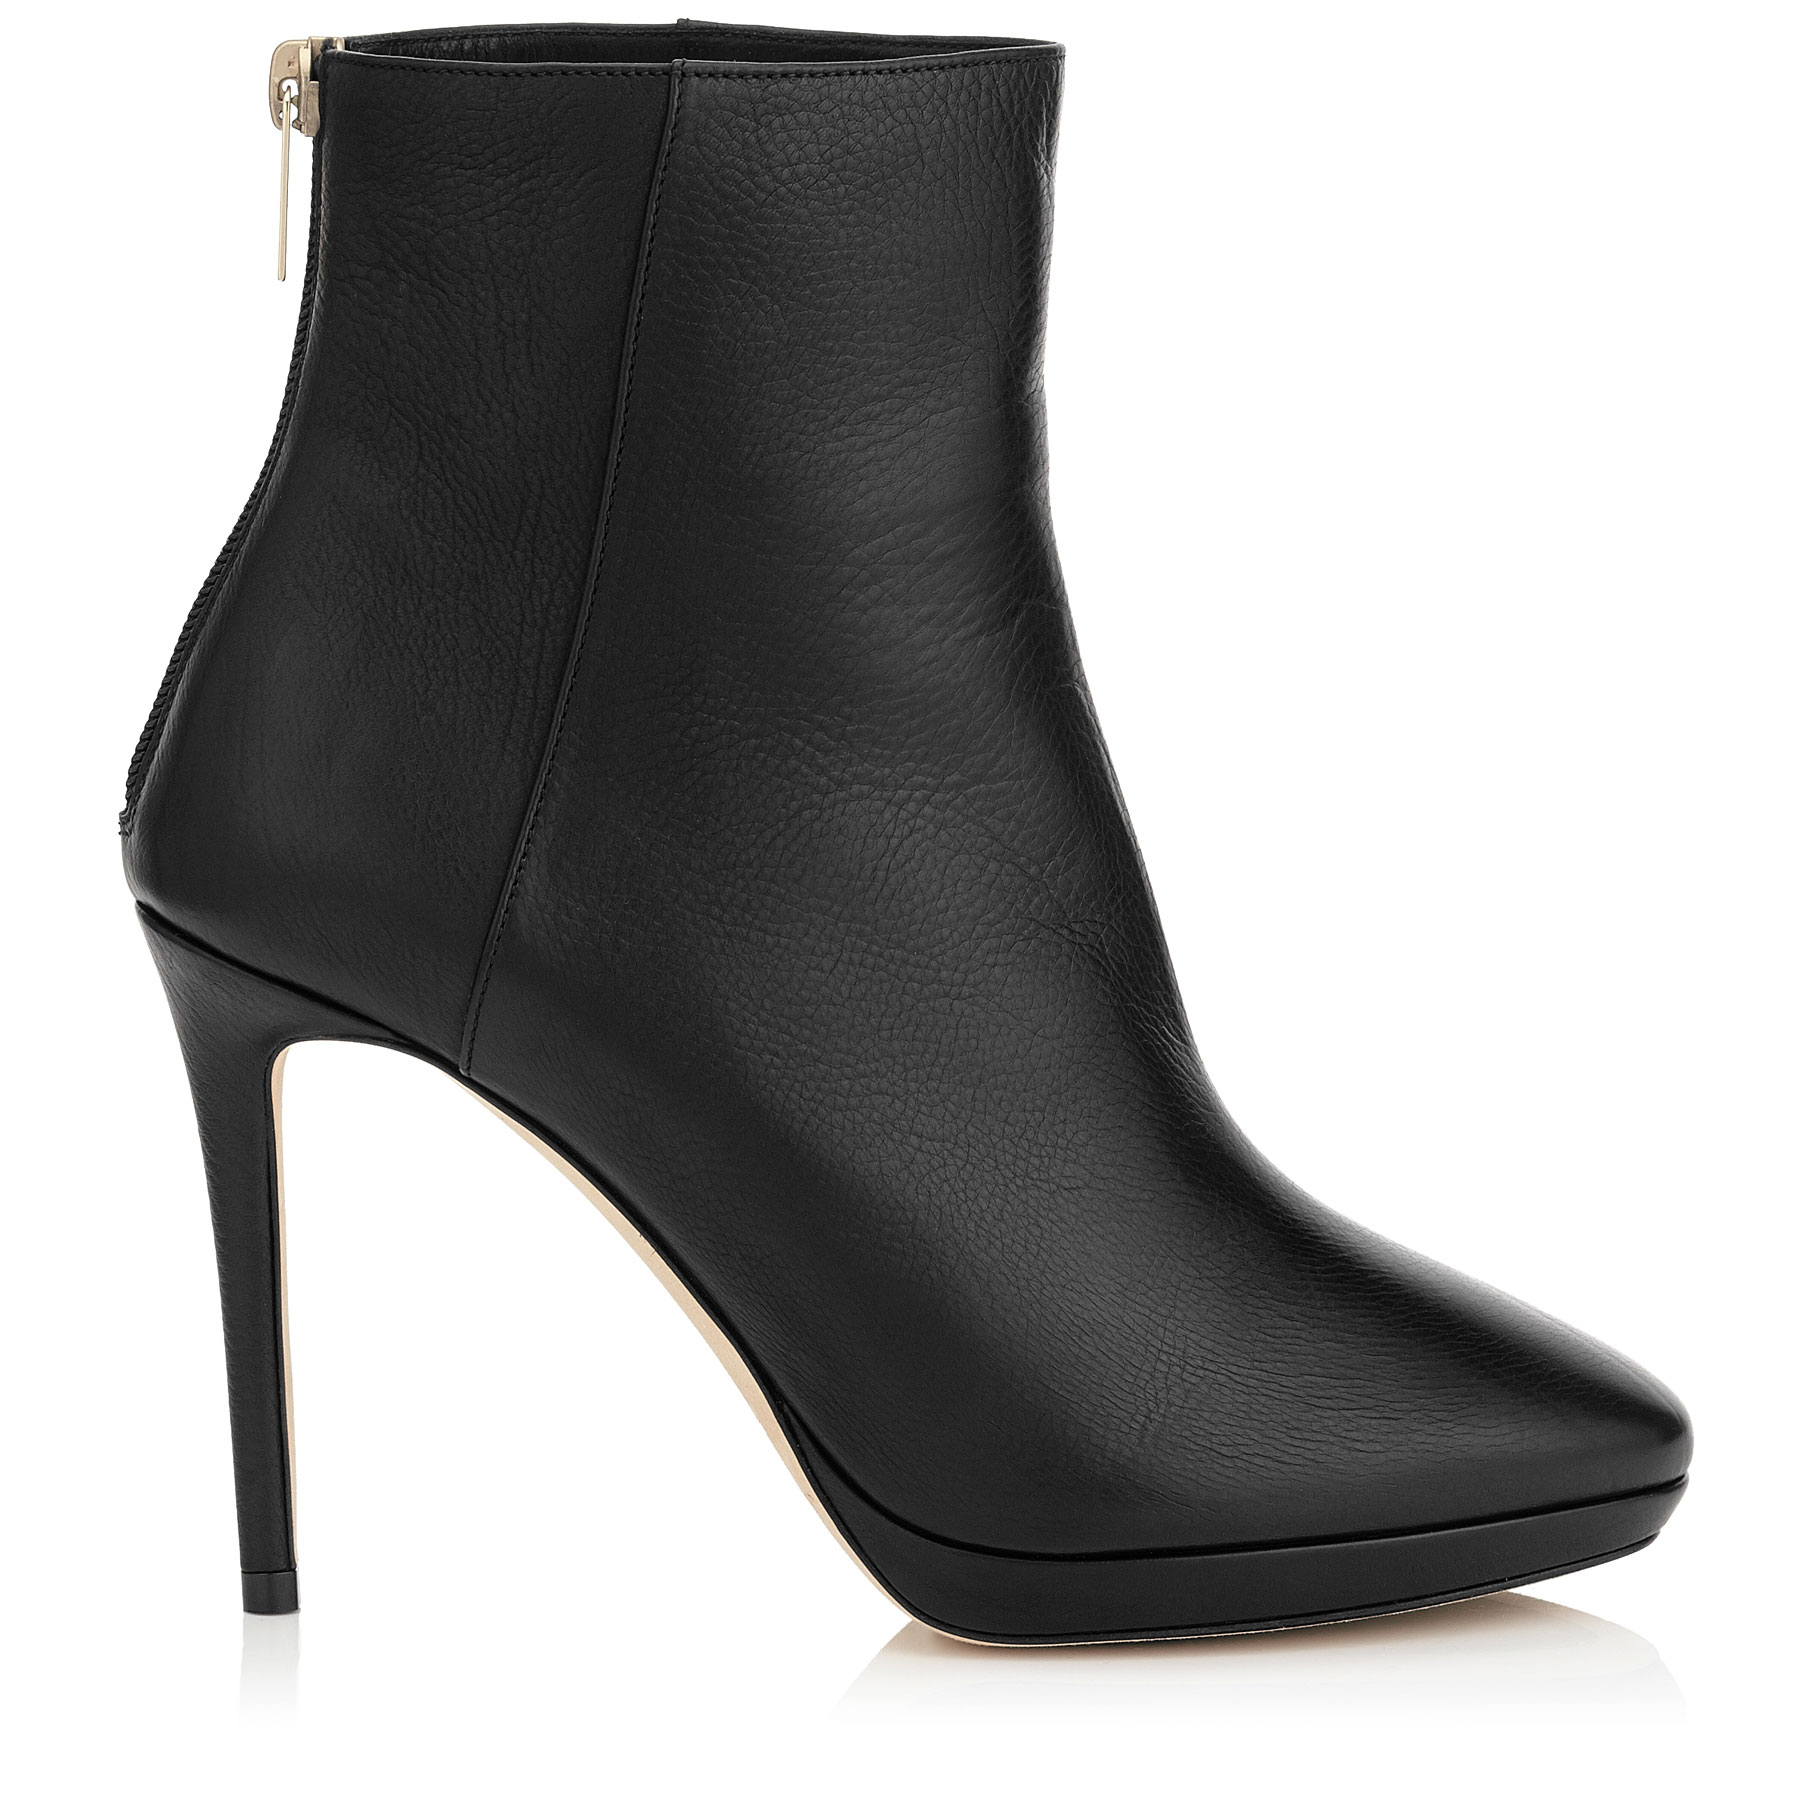 HARVEY 100 Black Grainy Calf Leather Platform Ankle Boots by Jimmy Choo